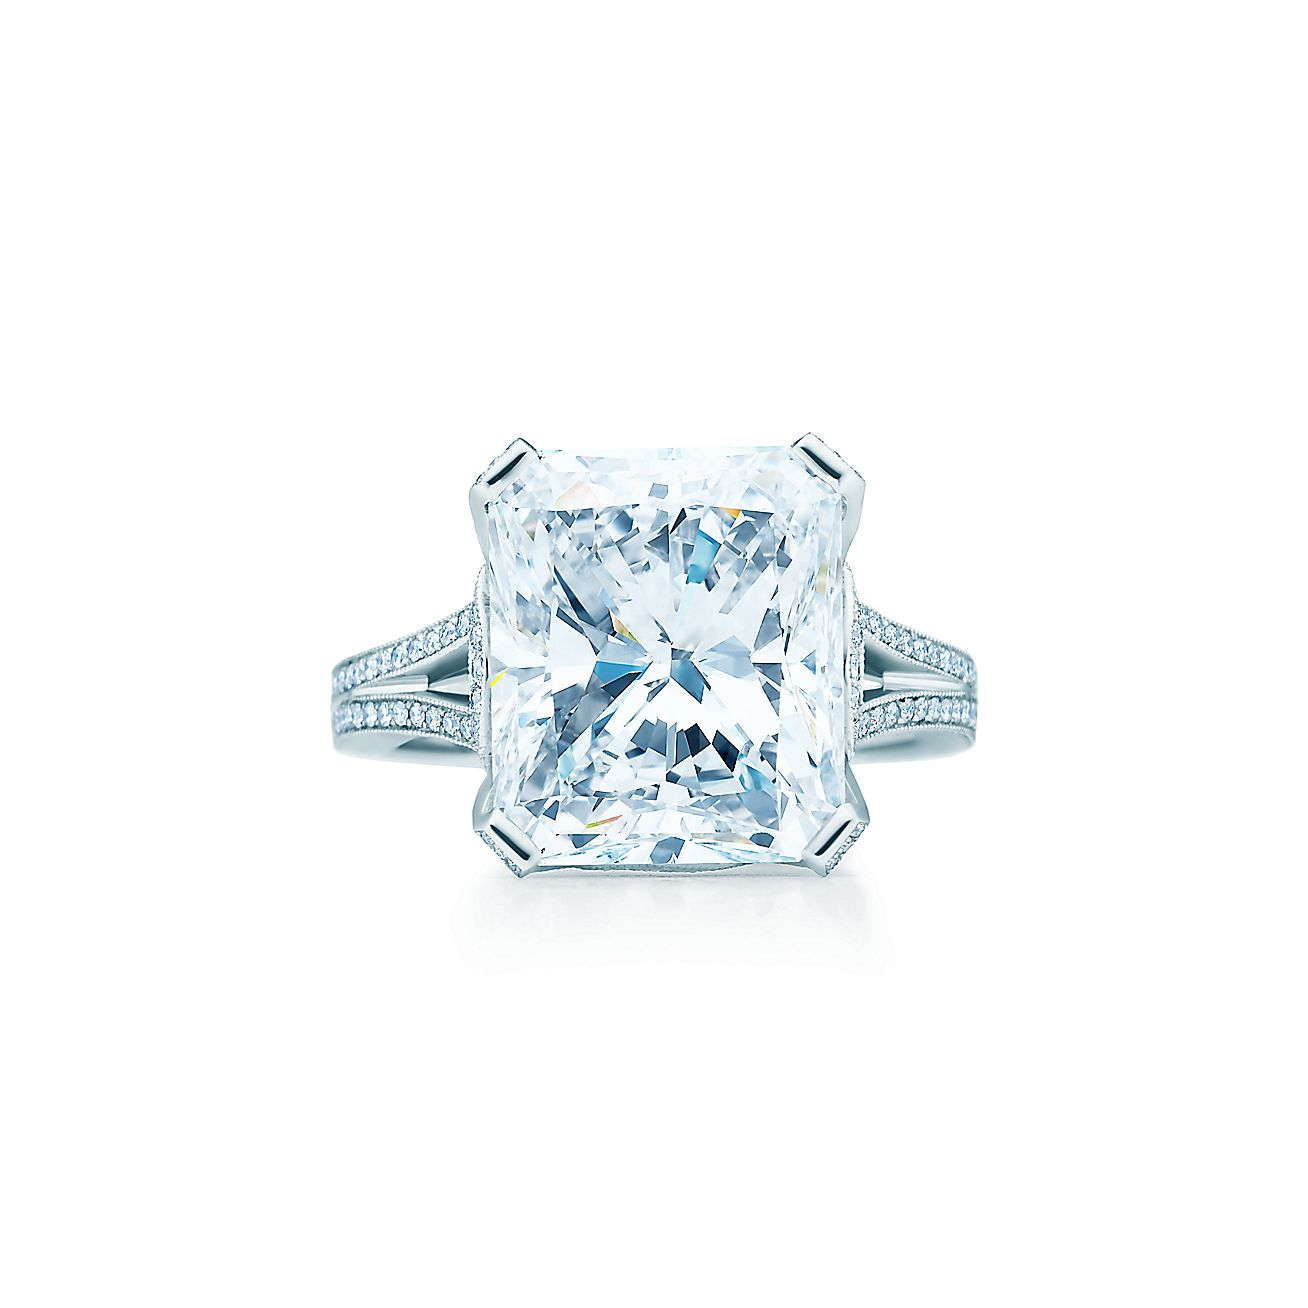 rings ring engagement petra oval mount cut gems semi rectangular setting